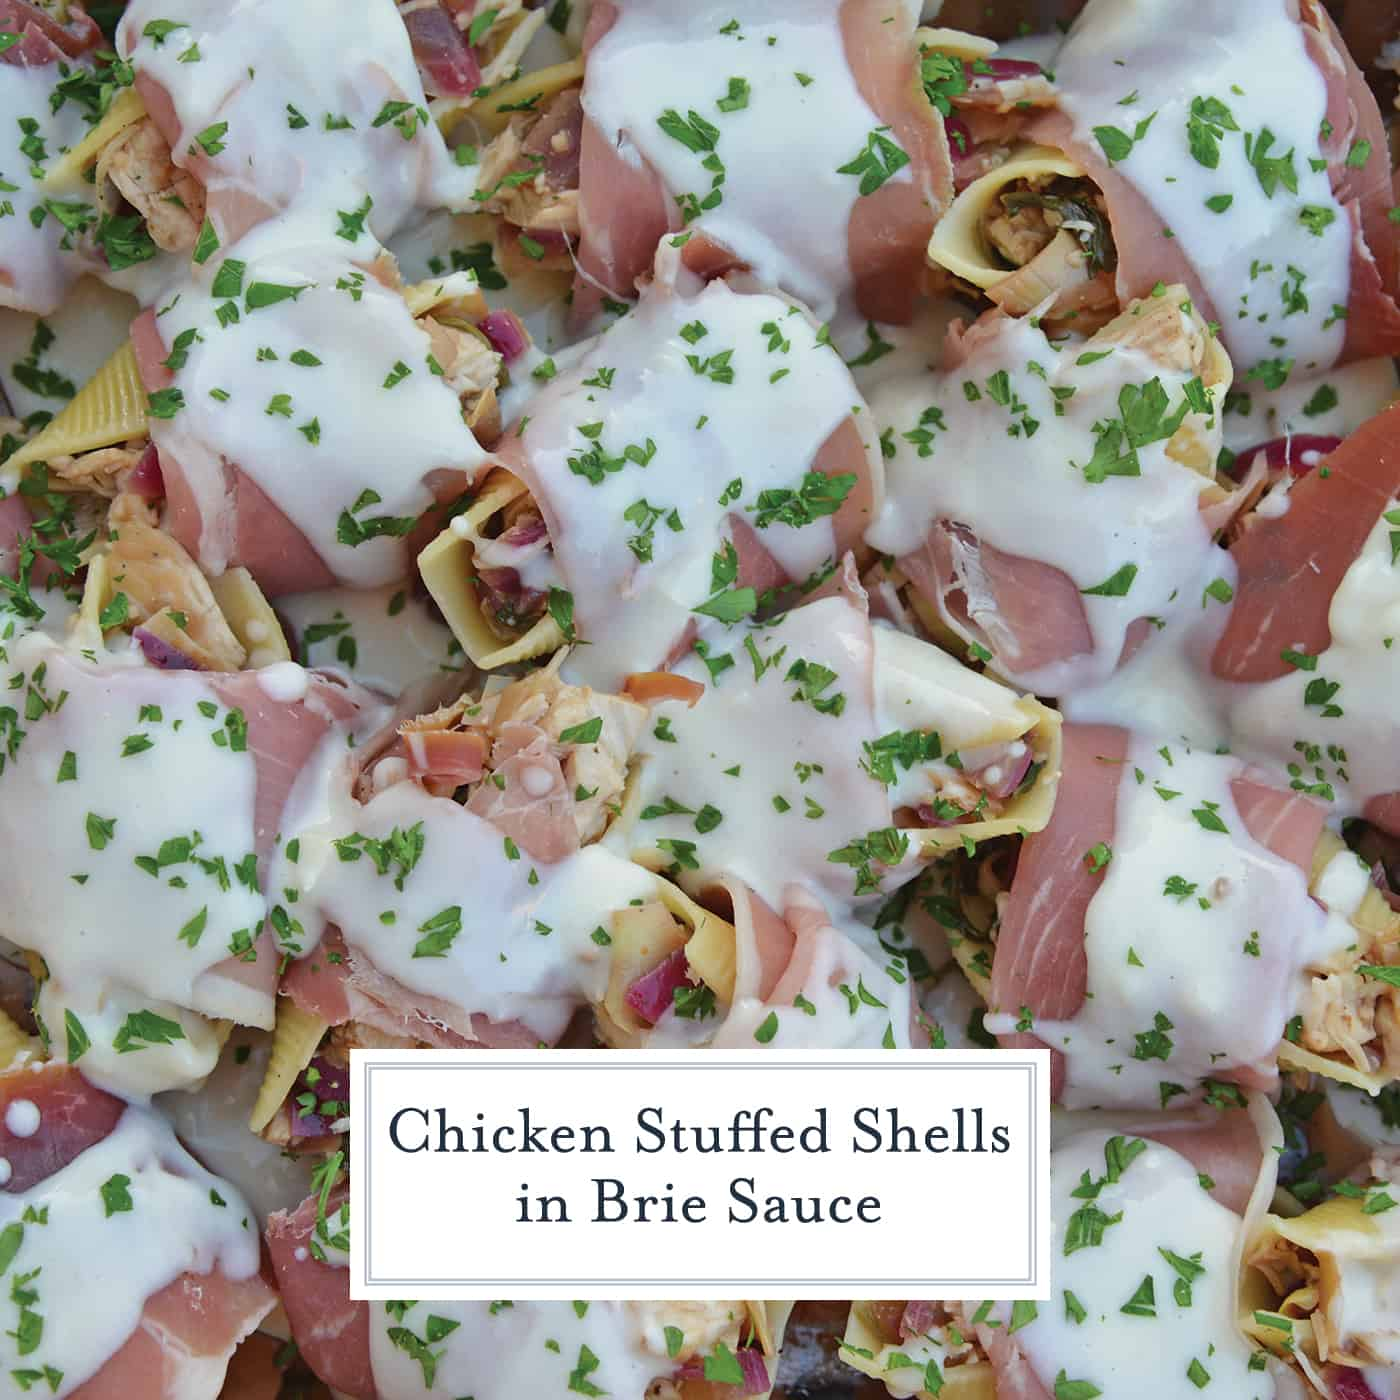 Prosciutto Wrapped Chicken Stuffed Shells and Creamy Brie Sauce is a rich and savory easy dinner you'll want to make again and again! #chickenstuffedshells #stuffedshellsrecipe www.savoryexperiments.com